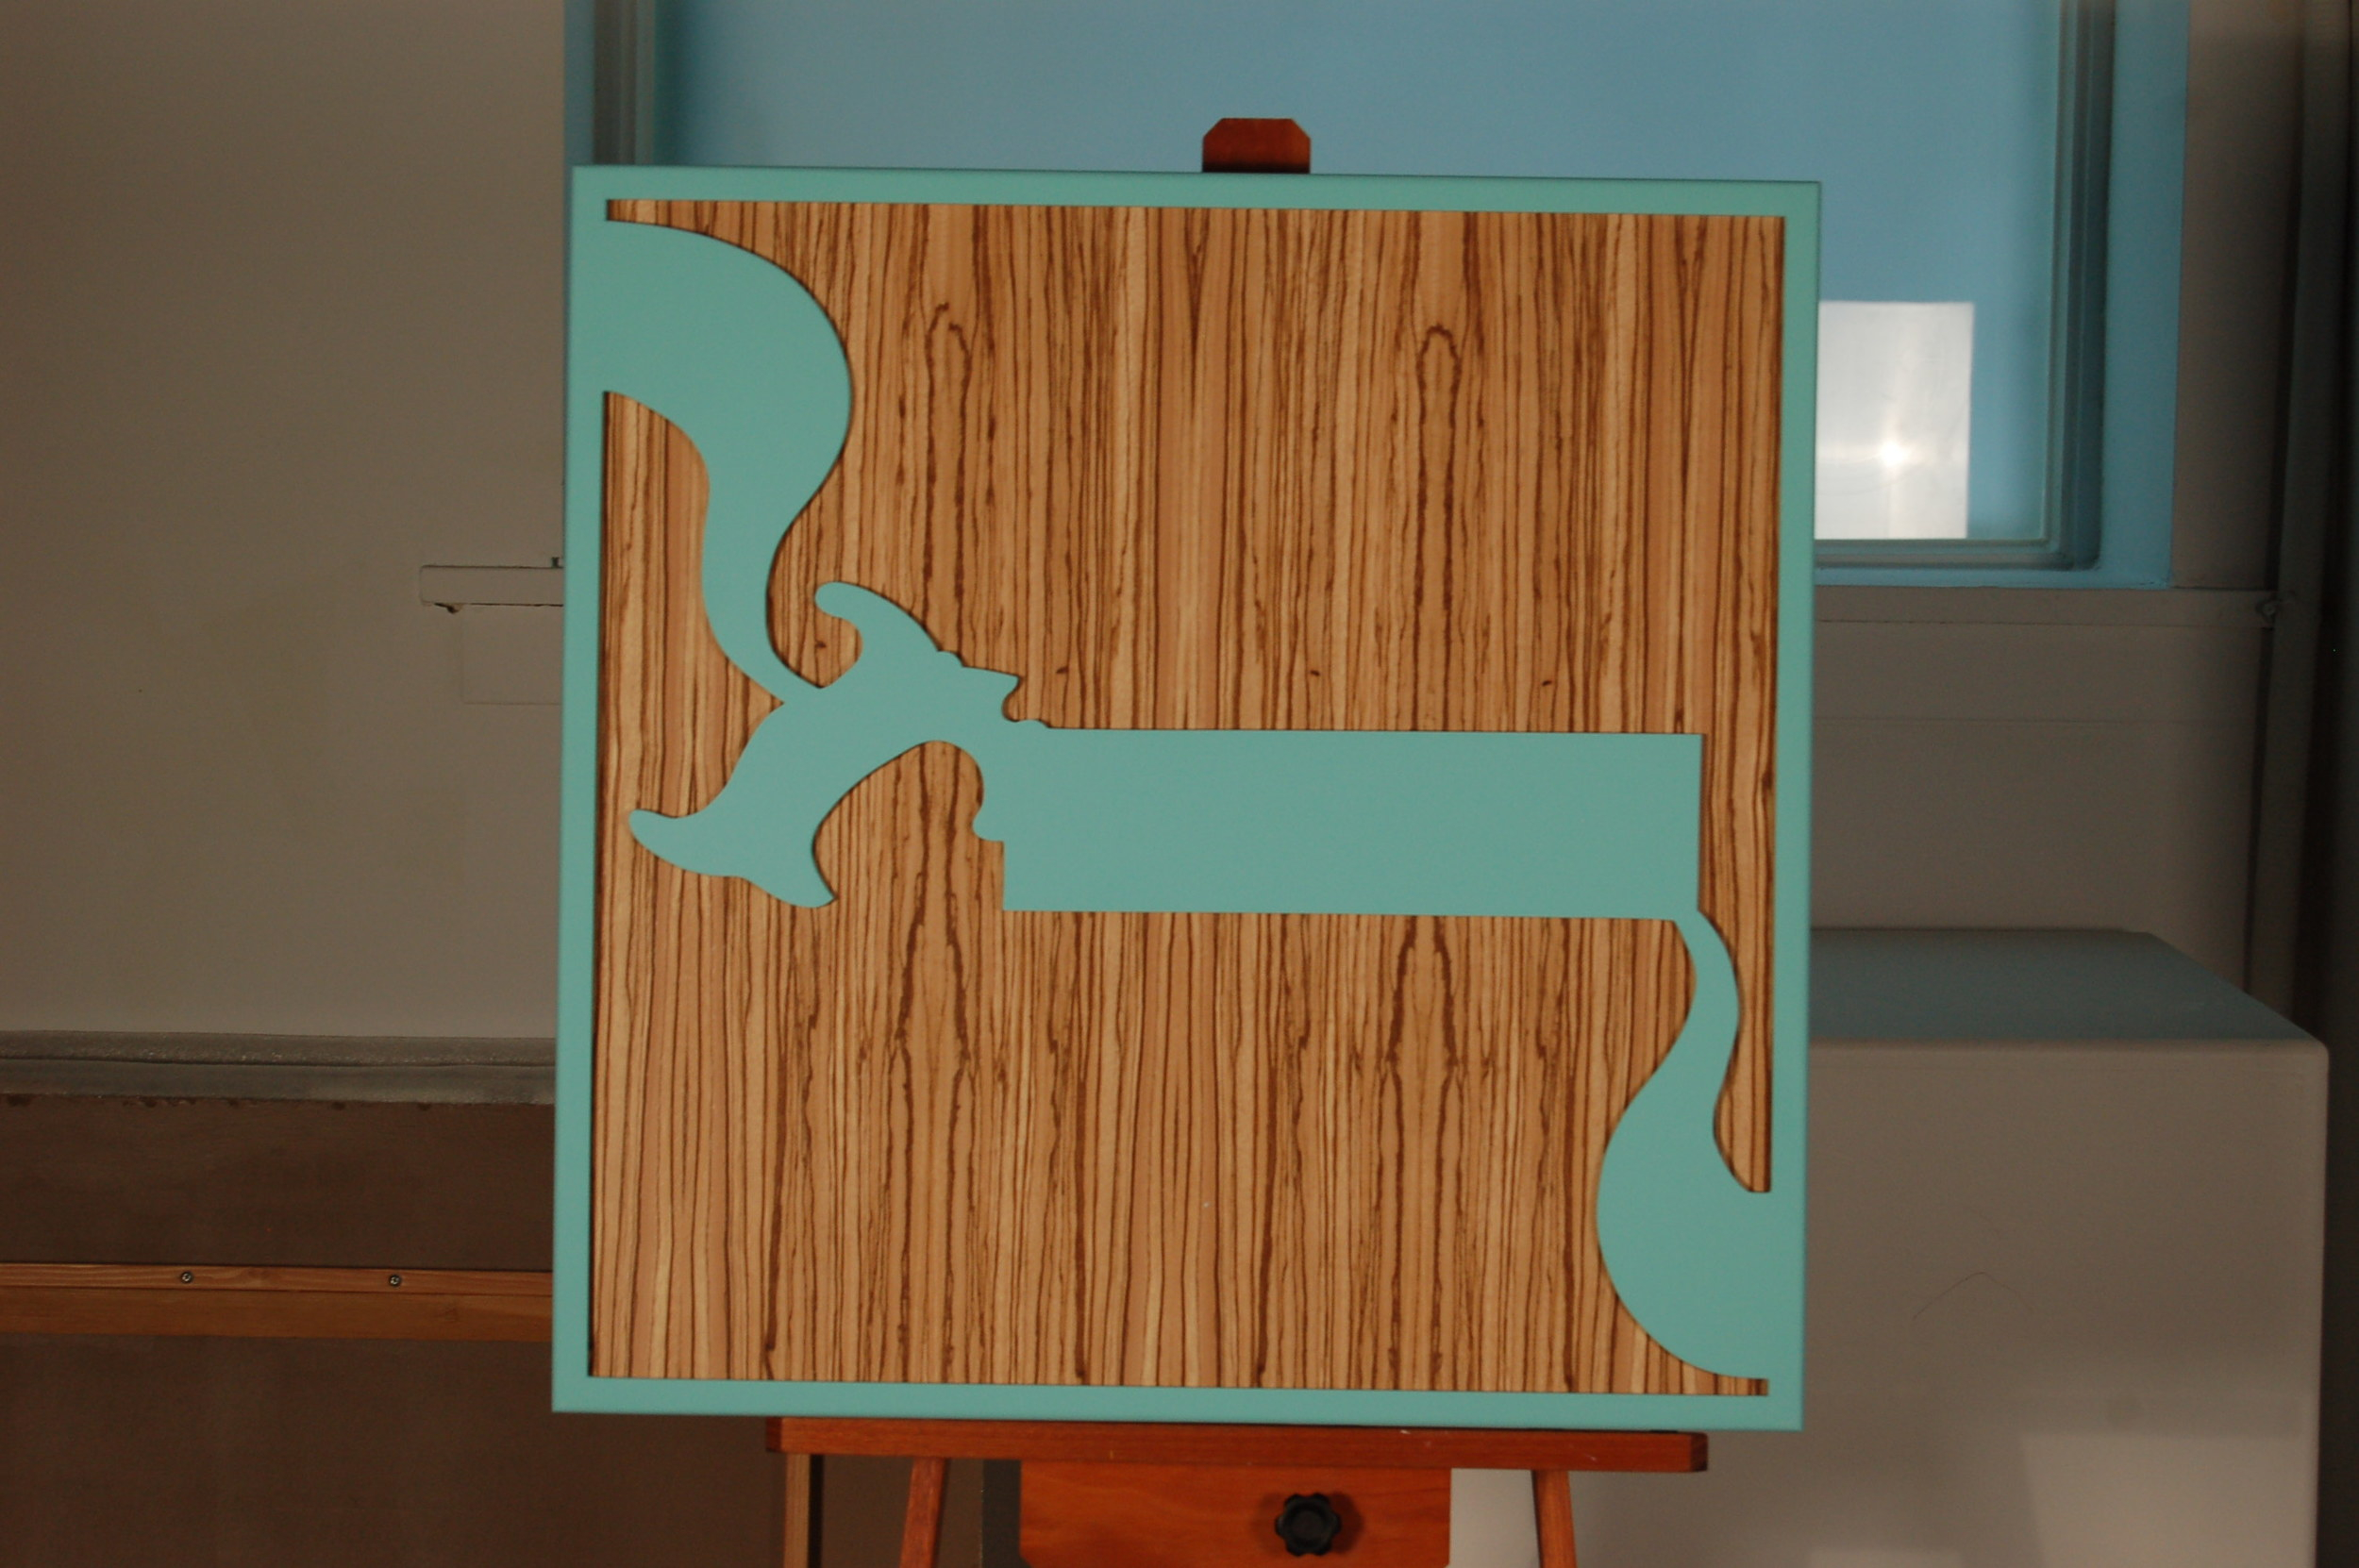 KH-007, The Hand Saw That Made the Frame, Zebra Wood, wood panel, acrylic paint, 27x27, 2015.JPG